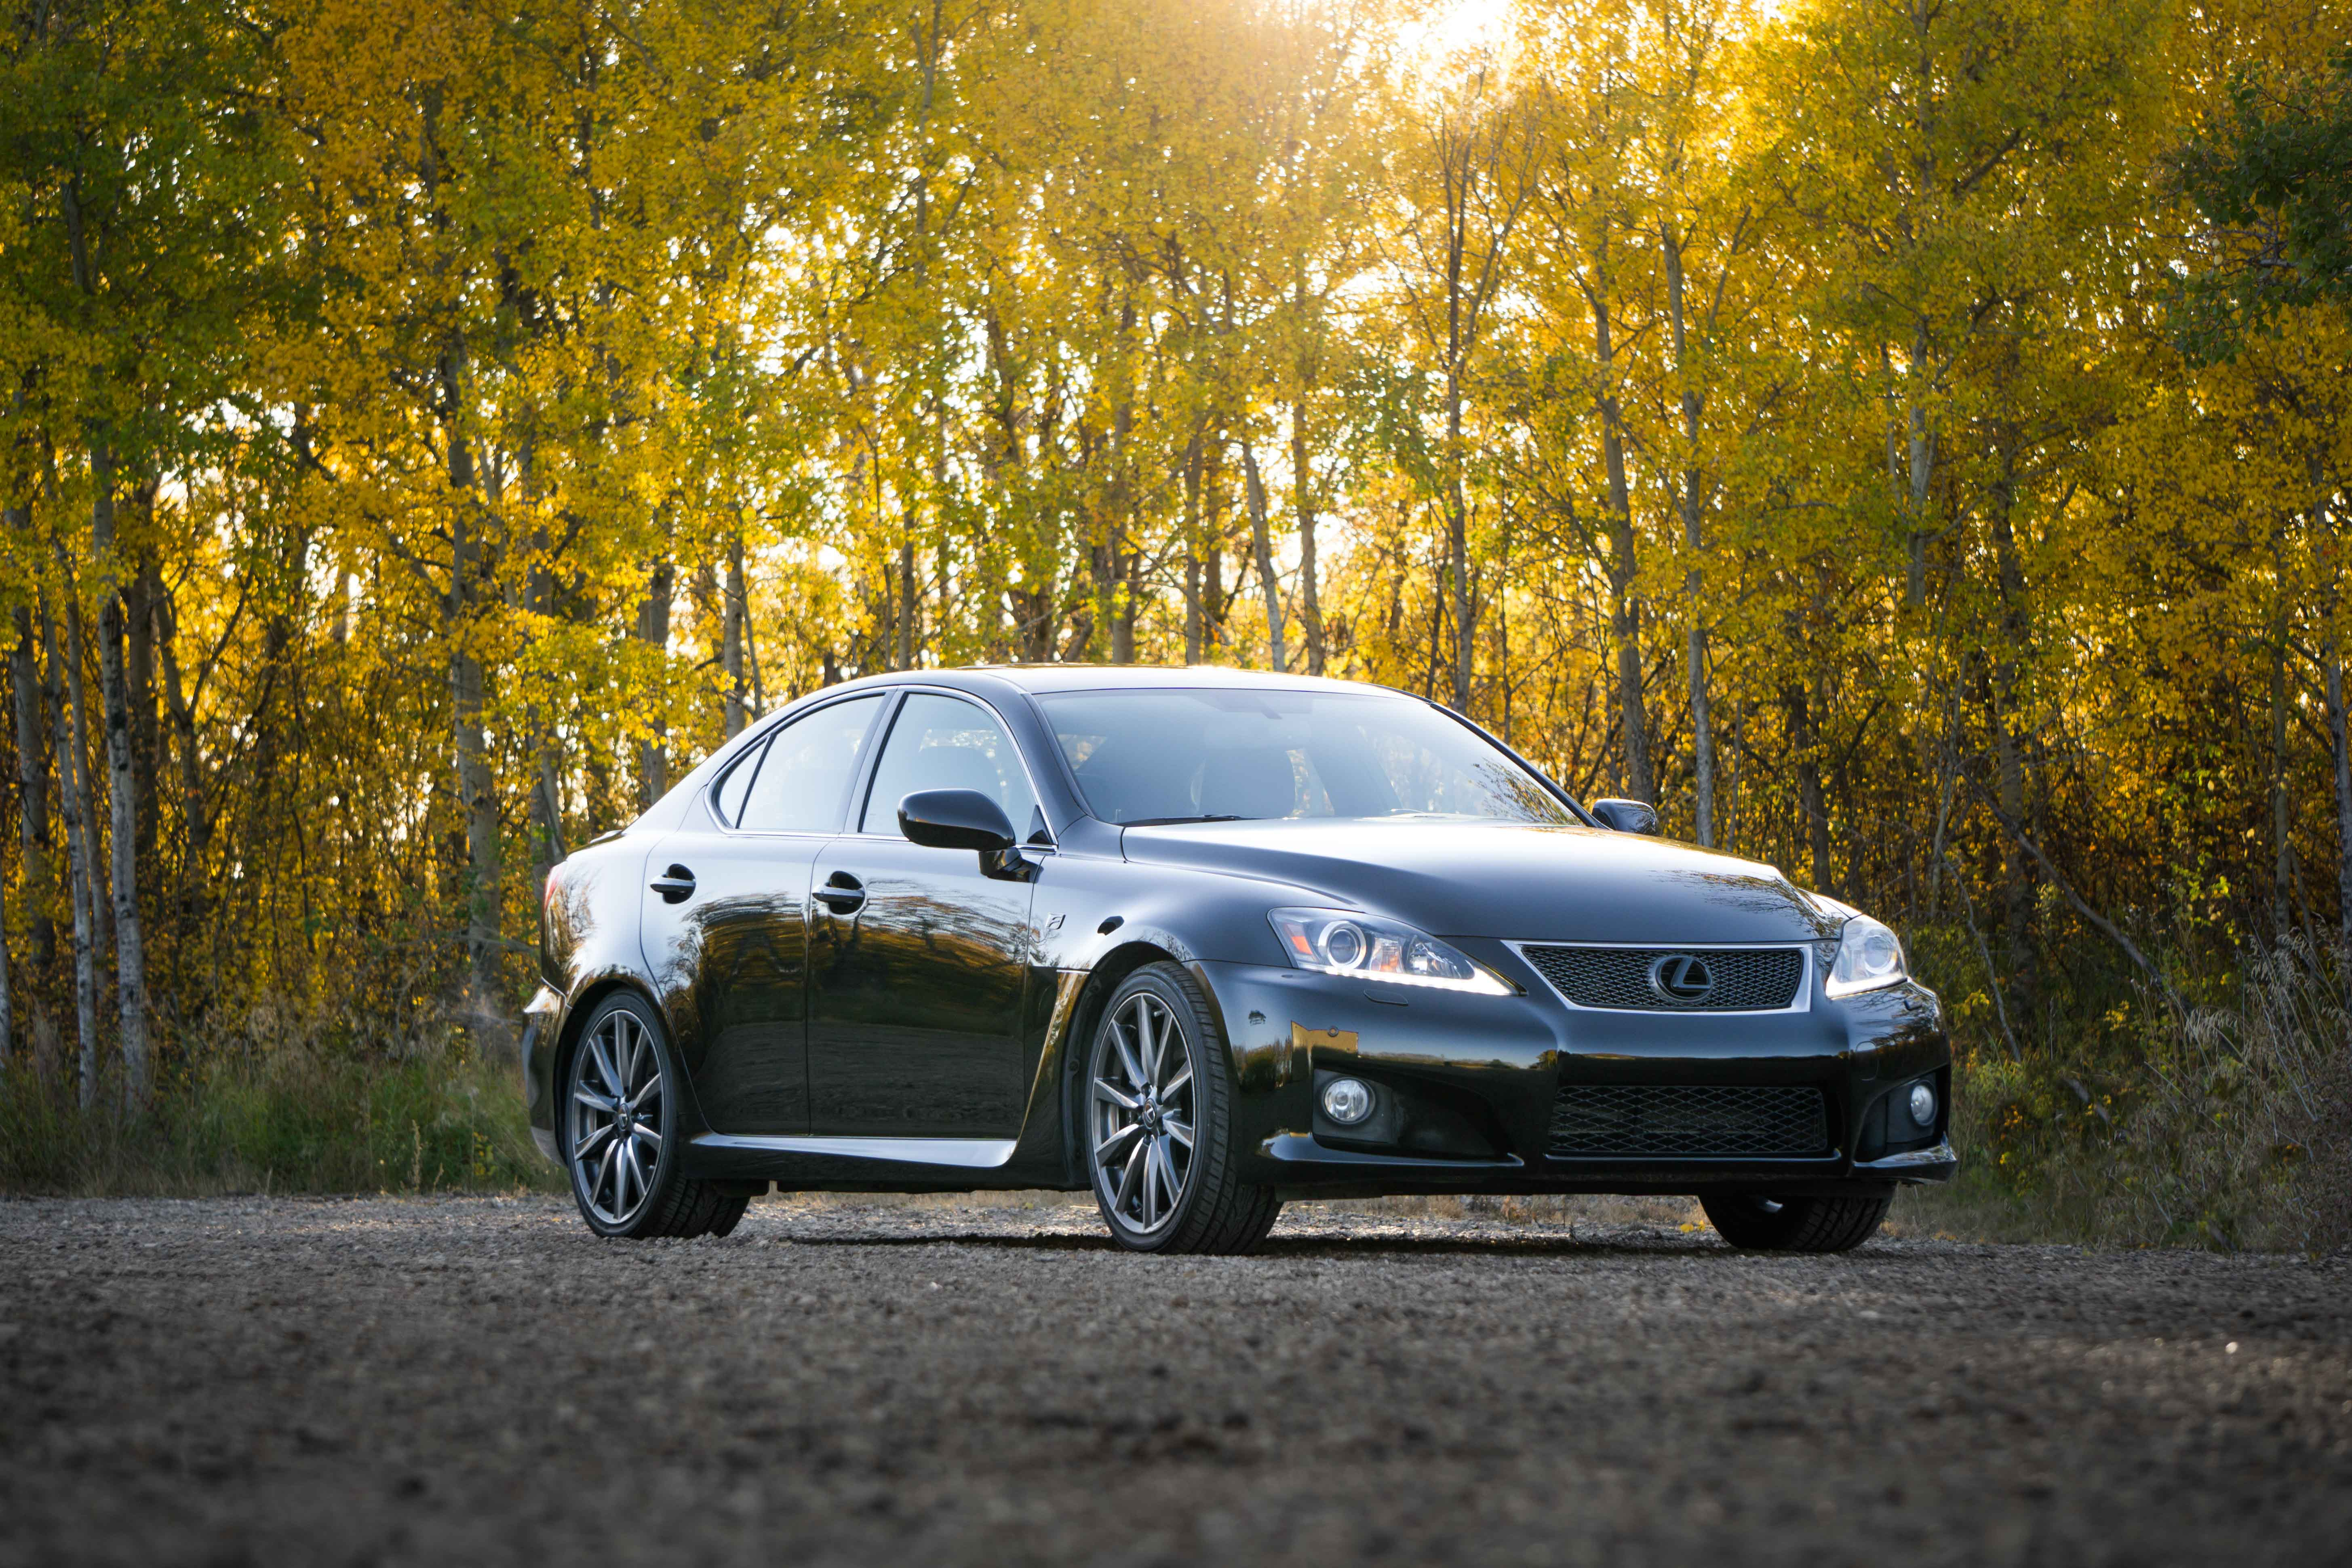 Lexus IS-F | Unleashed Auto Care